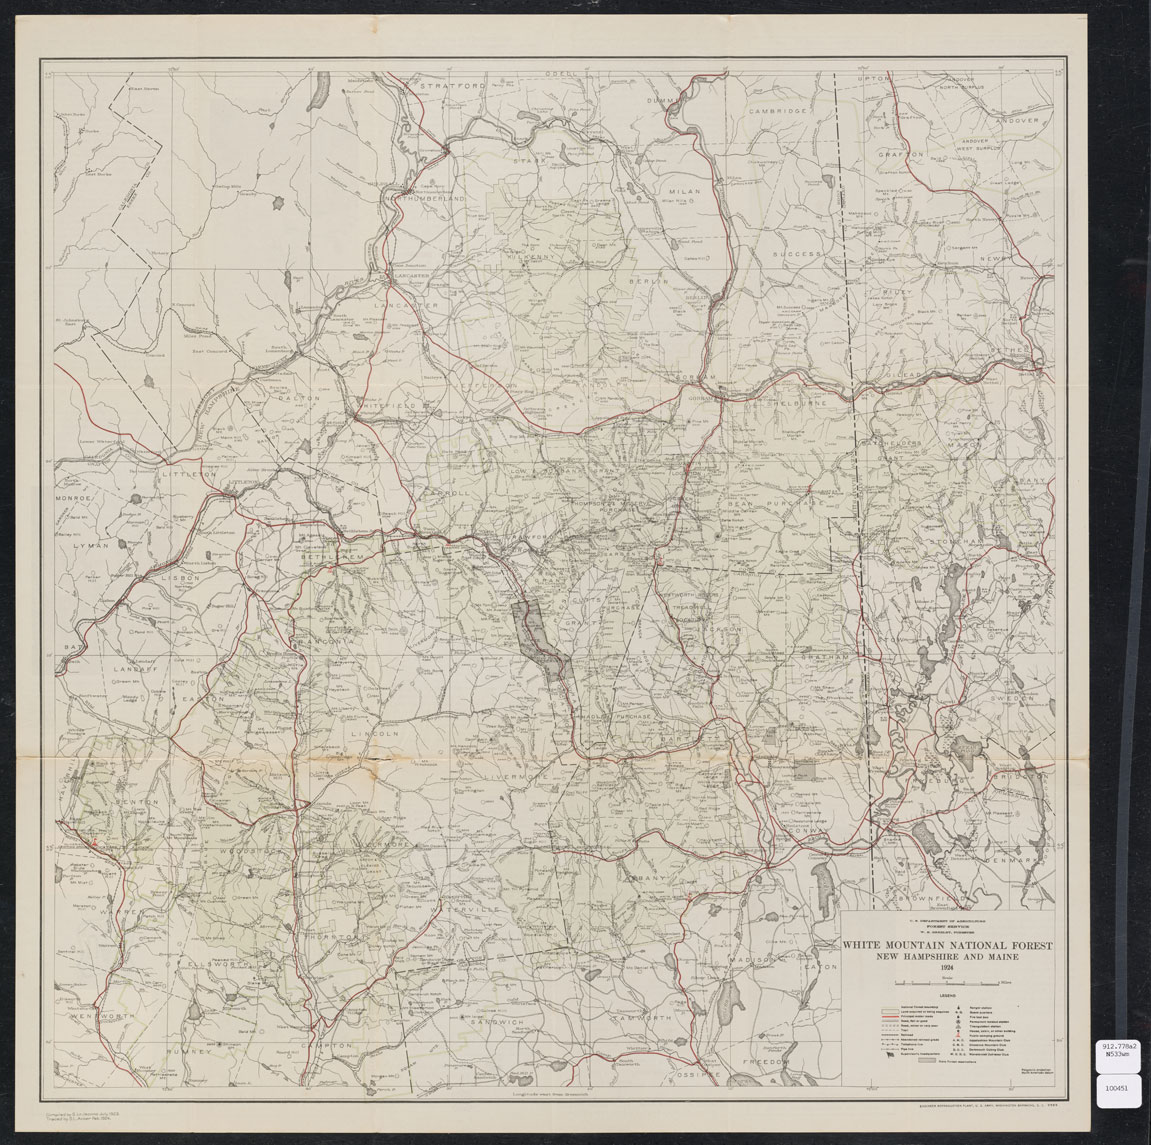 A large black and white square map is shown. It is dense with information, and includes markings for rivers, mountains, lakes, as well as town, county, and landmark notations. On the right is a black dotted border, with New Hampshire labeled to the left and Maine to the right. It is titled